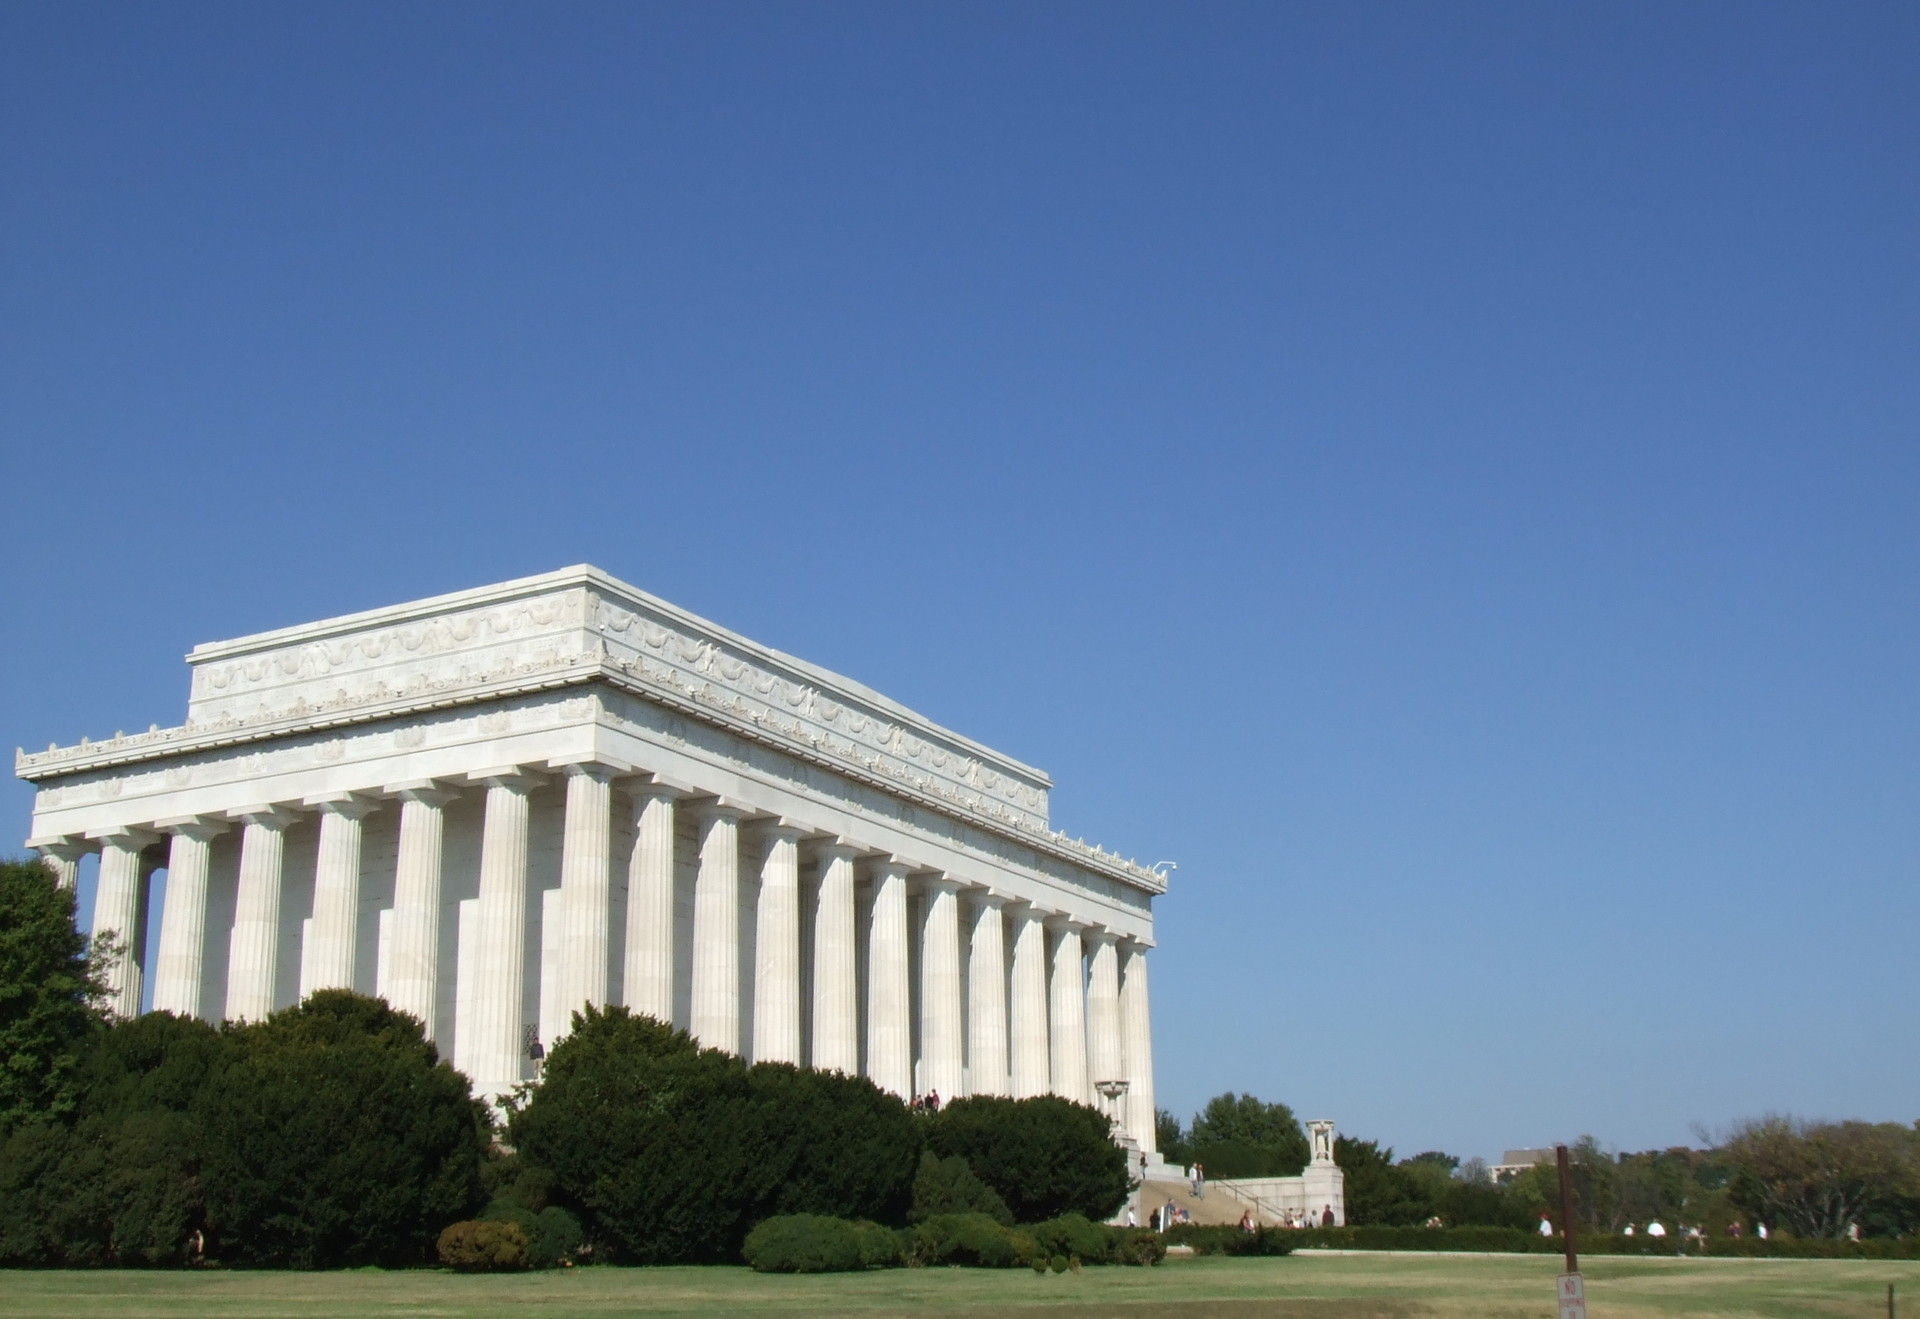 Res: 1920x1319, Travel images The Lincoln Memorial HD wallpaper and background photos